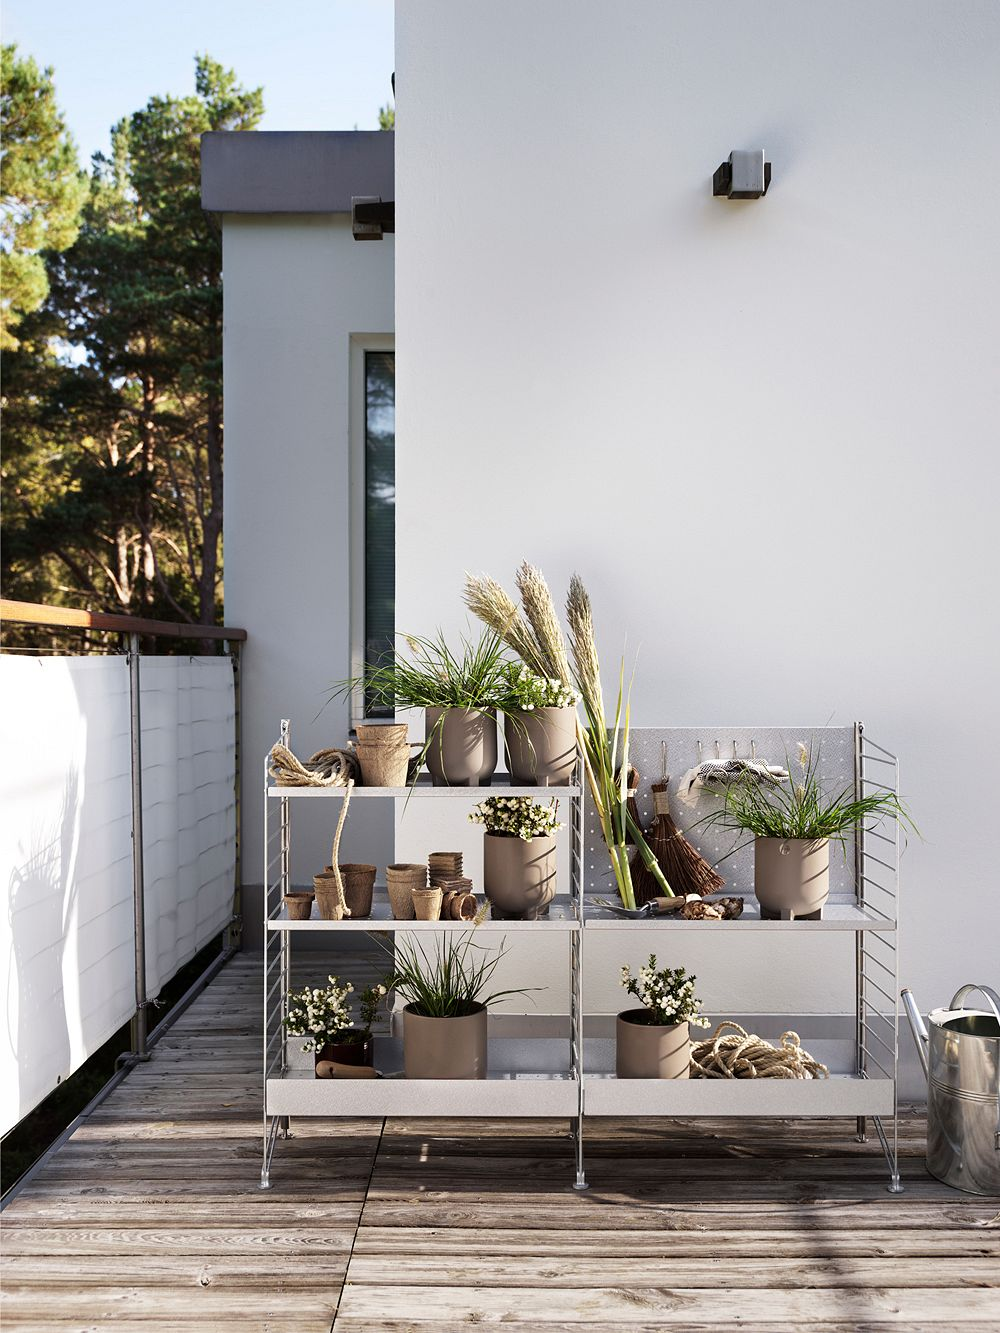 String Furniture Outdoor shelving collection